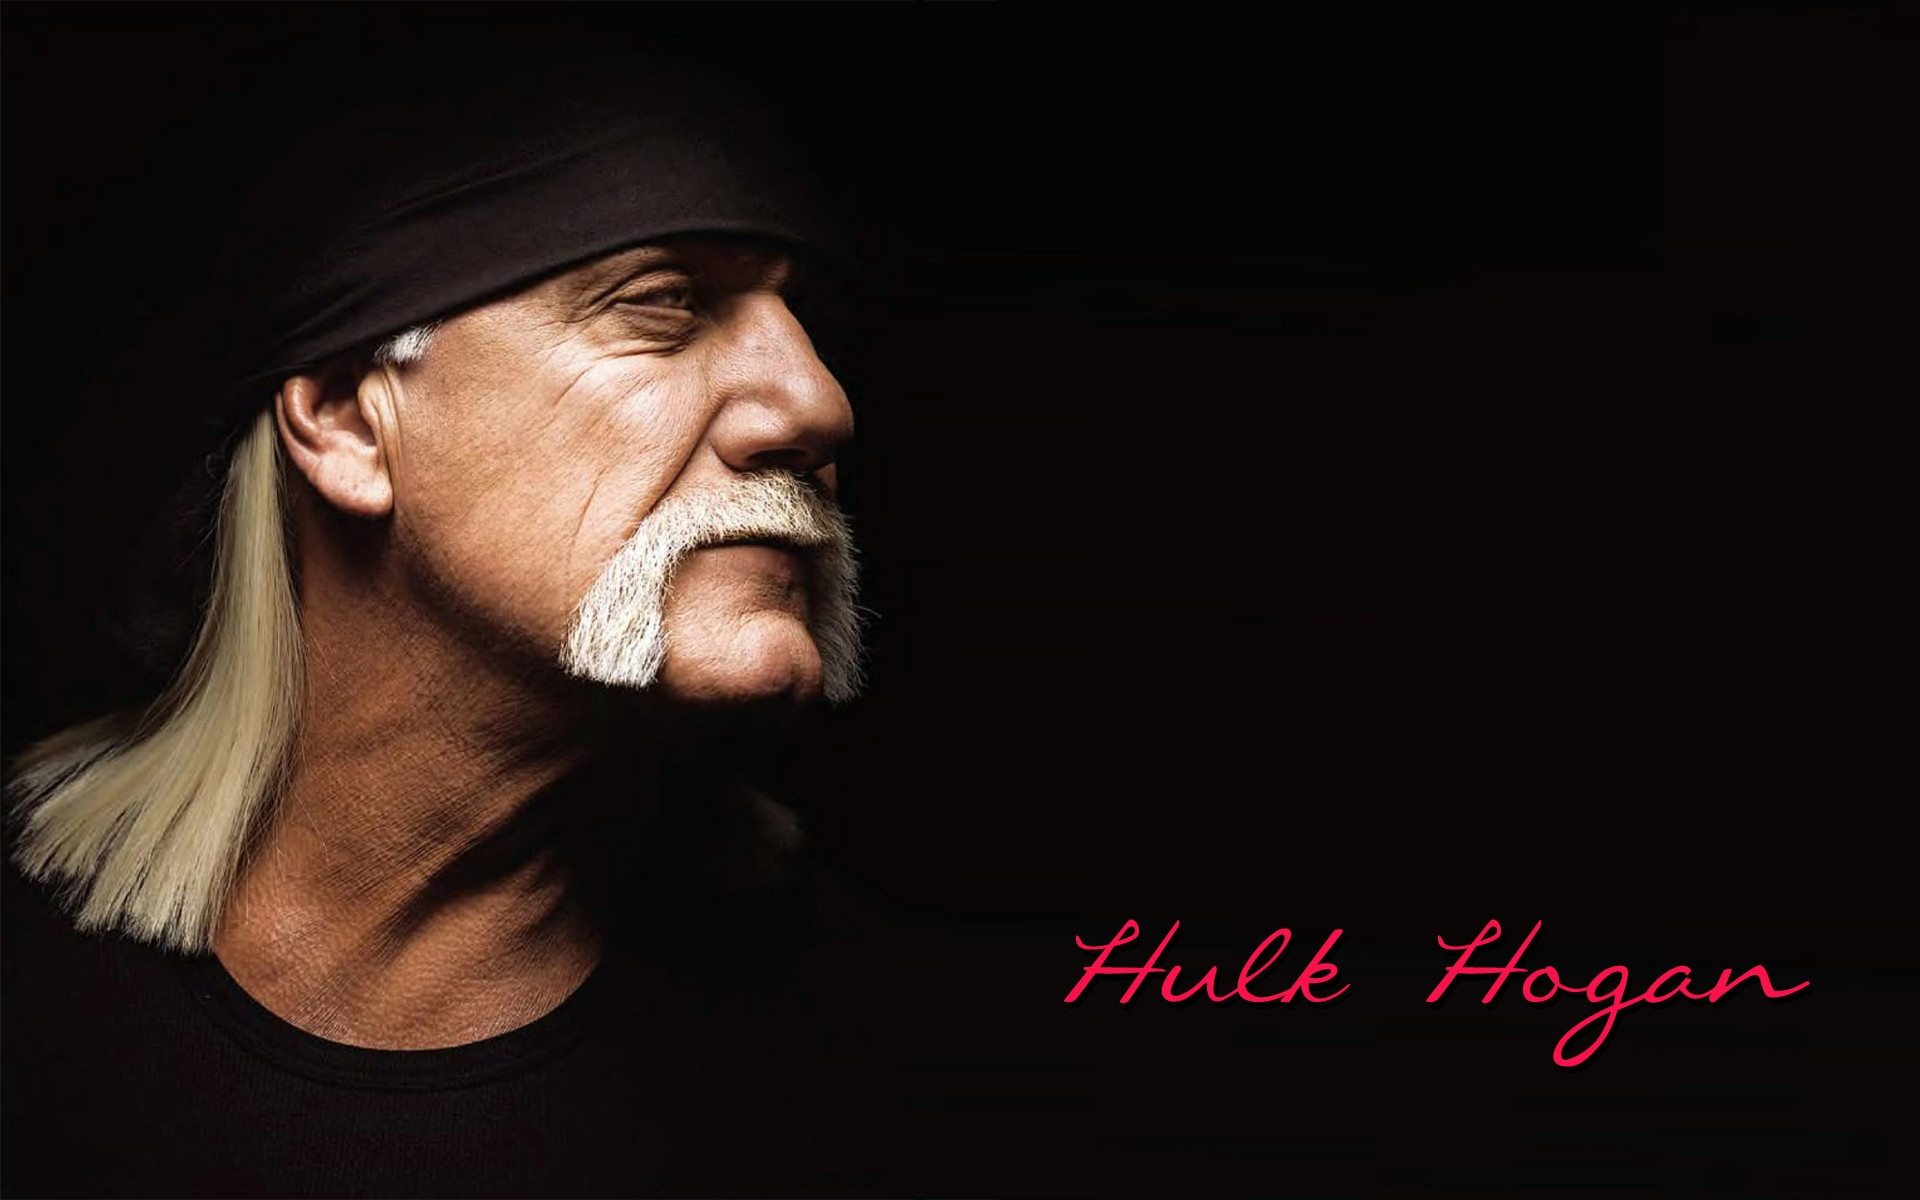 hulk hogan hd wallpaper